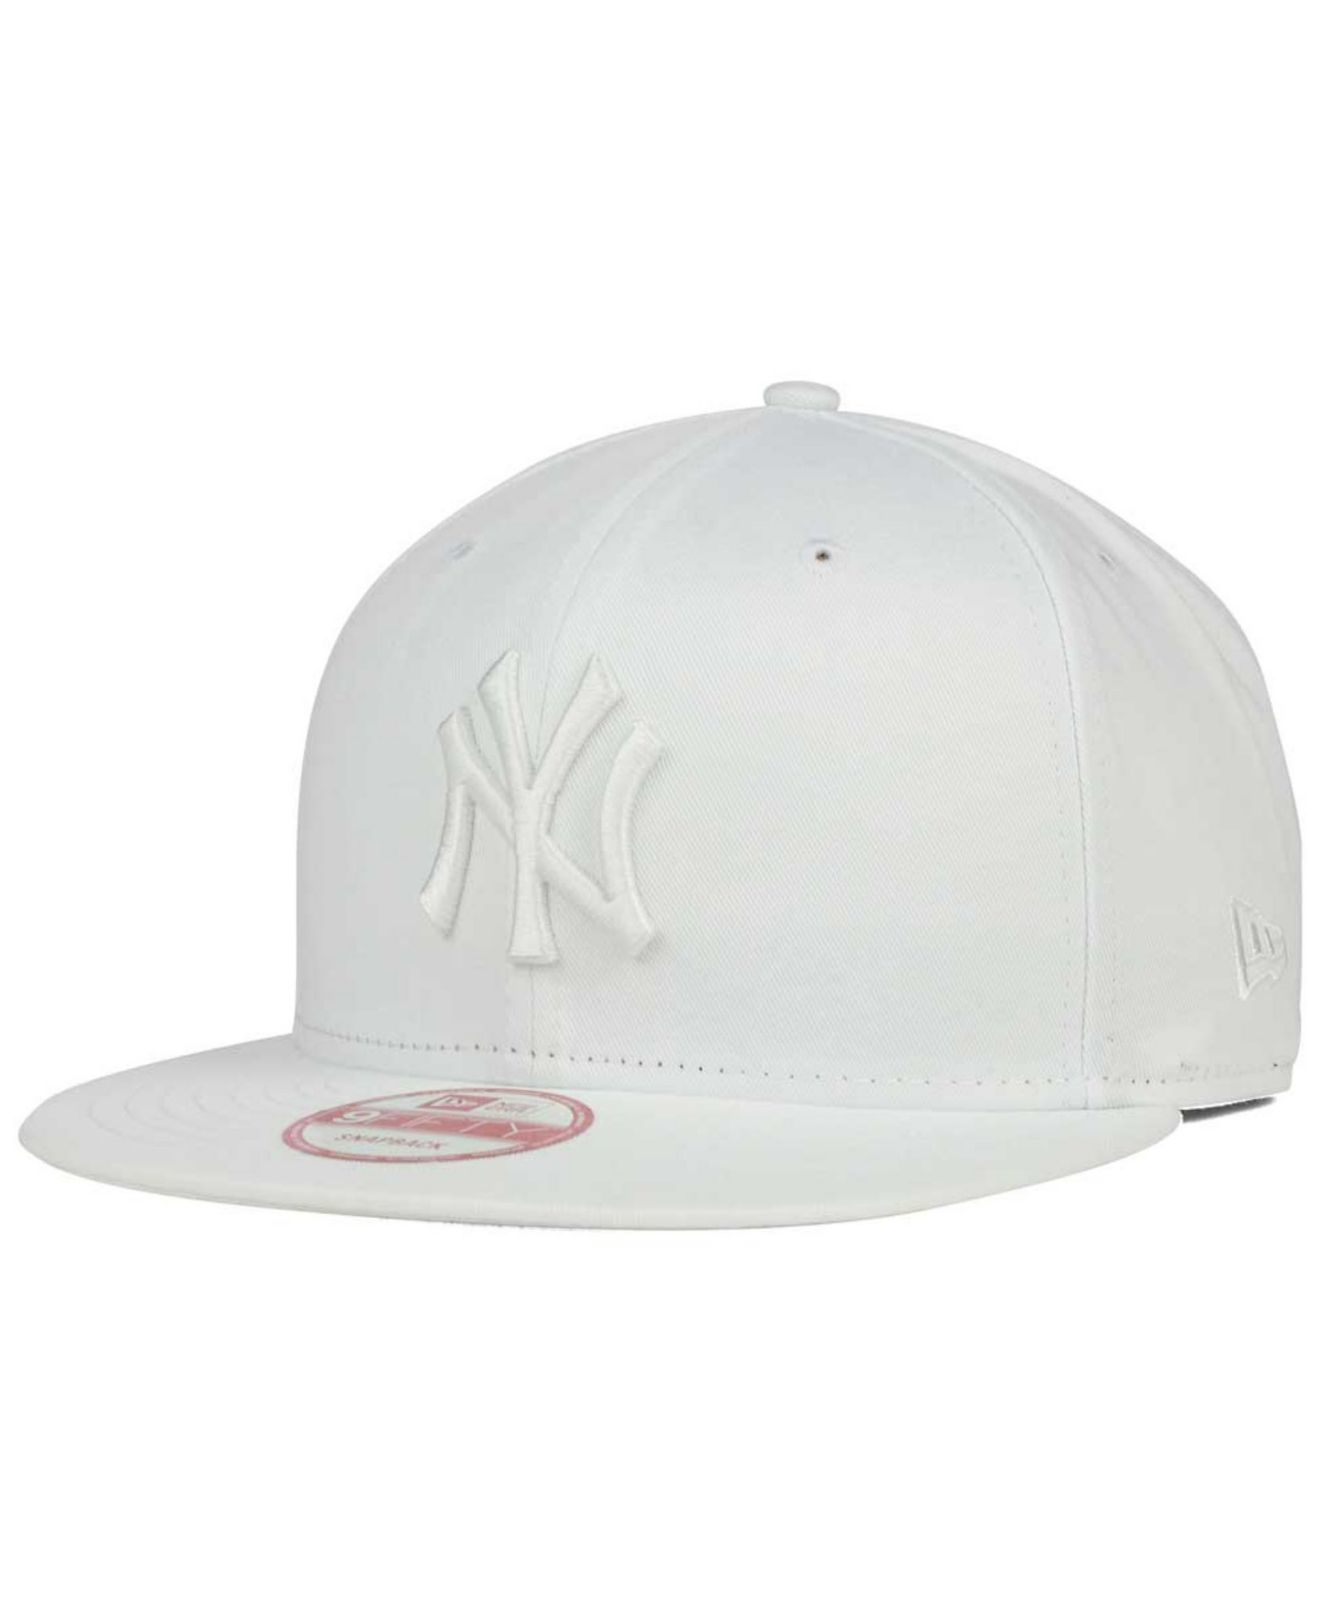 Lyst - KTZ New York Yankees White On White 9fifty Snapback Cap in ... f0a185ce834